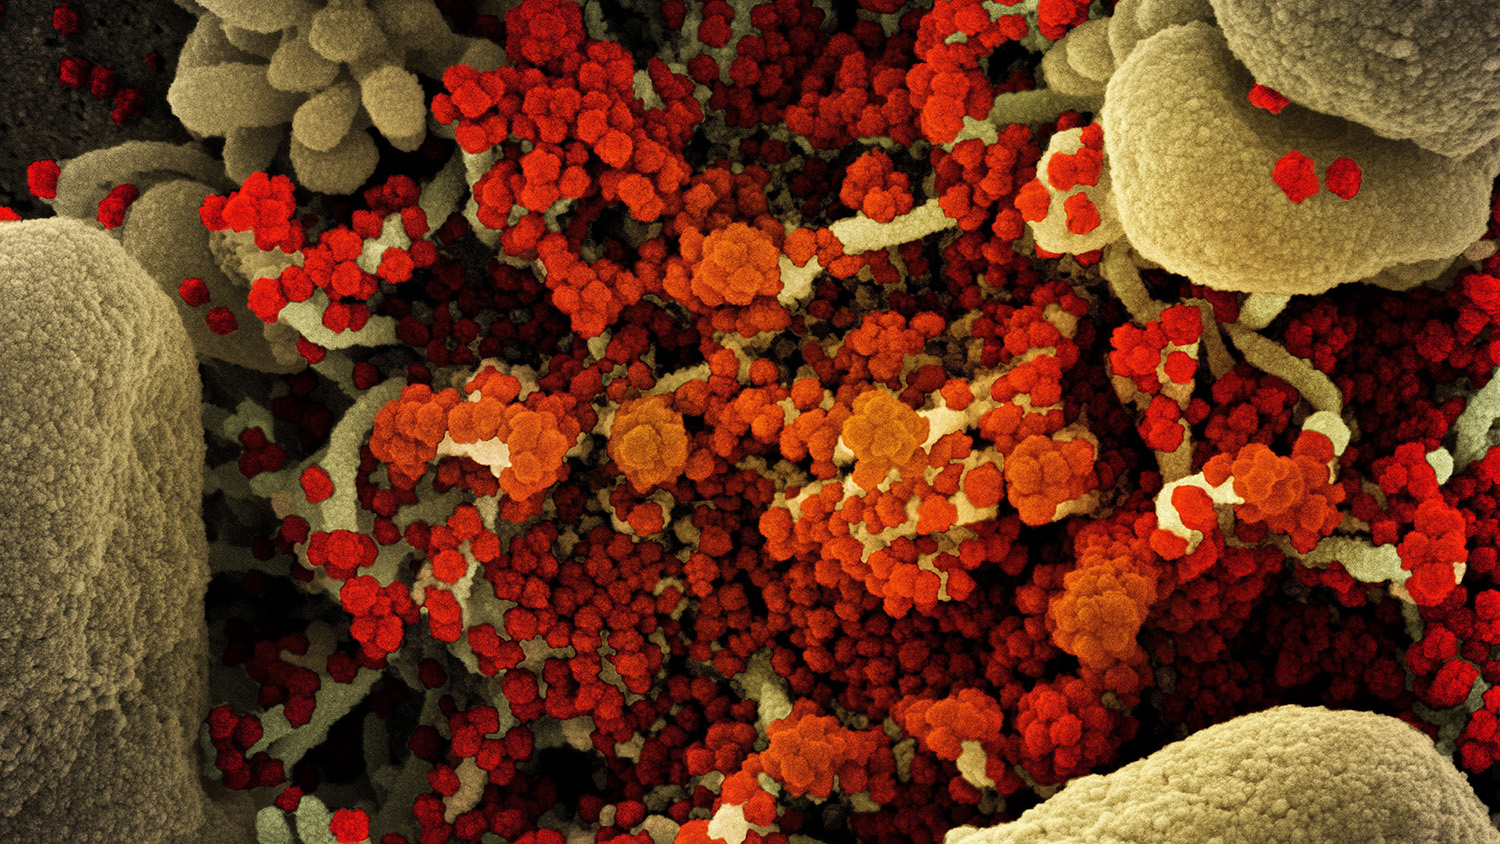 Colorized scanning electron micrograph of an apoptotic cell (tan) heavily infected with SARS-CoV-2 virus particles (orange).